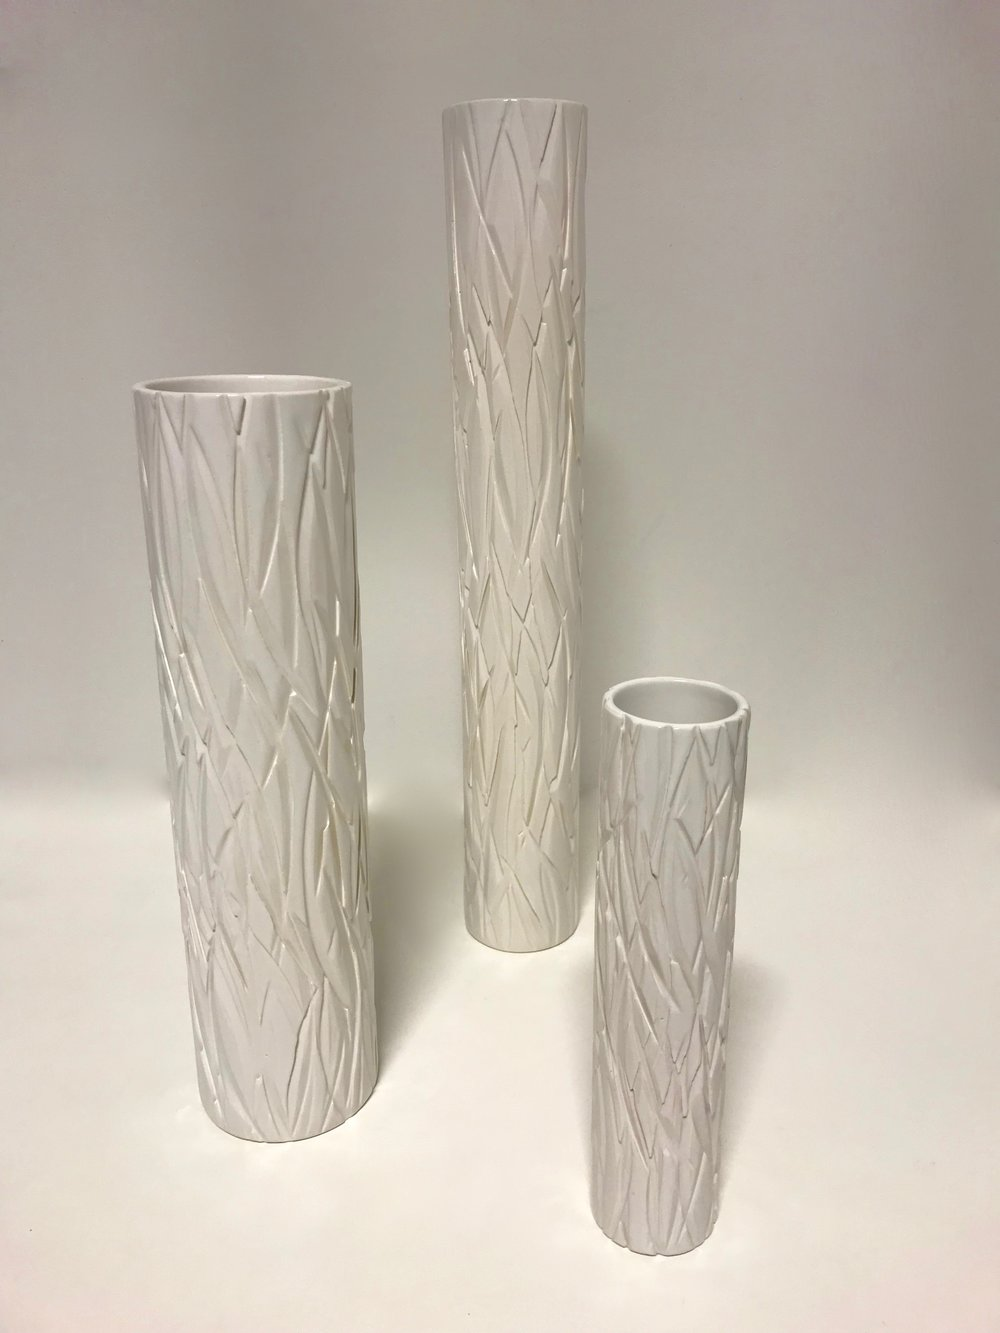 Cut Vases are high fired porcelain ceramic cylinders with a deeply carved surface texture that is applied by using a large industrial saw.  Materials: Ceramic  Dimensions: Tall Vase – 500mm tall x 80mm diameter (approx)  Large Vase – 400mm tall x 100mm diameter (approx)  Small Vase – 250mm tall x 60mm diameter (approx)